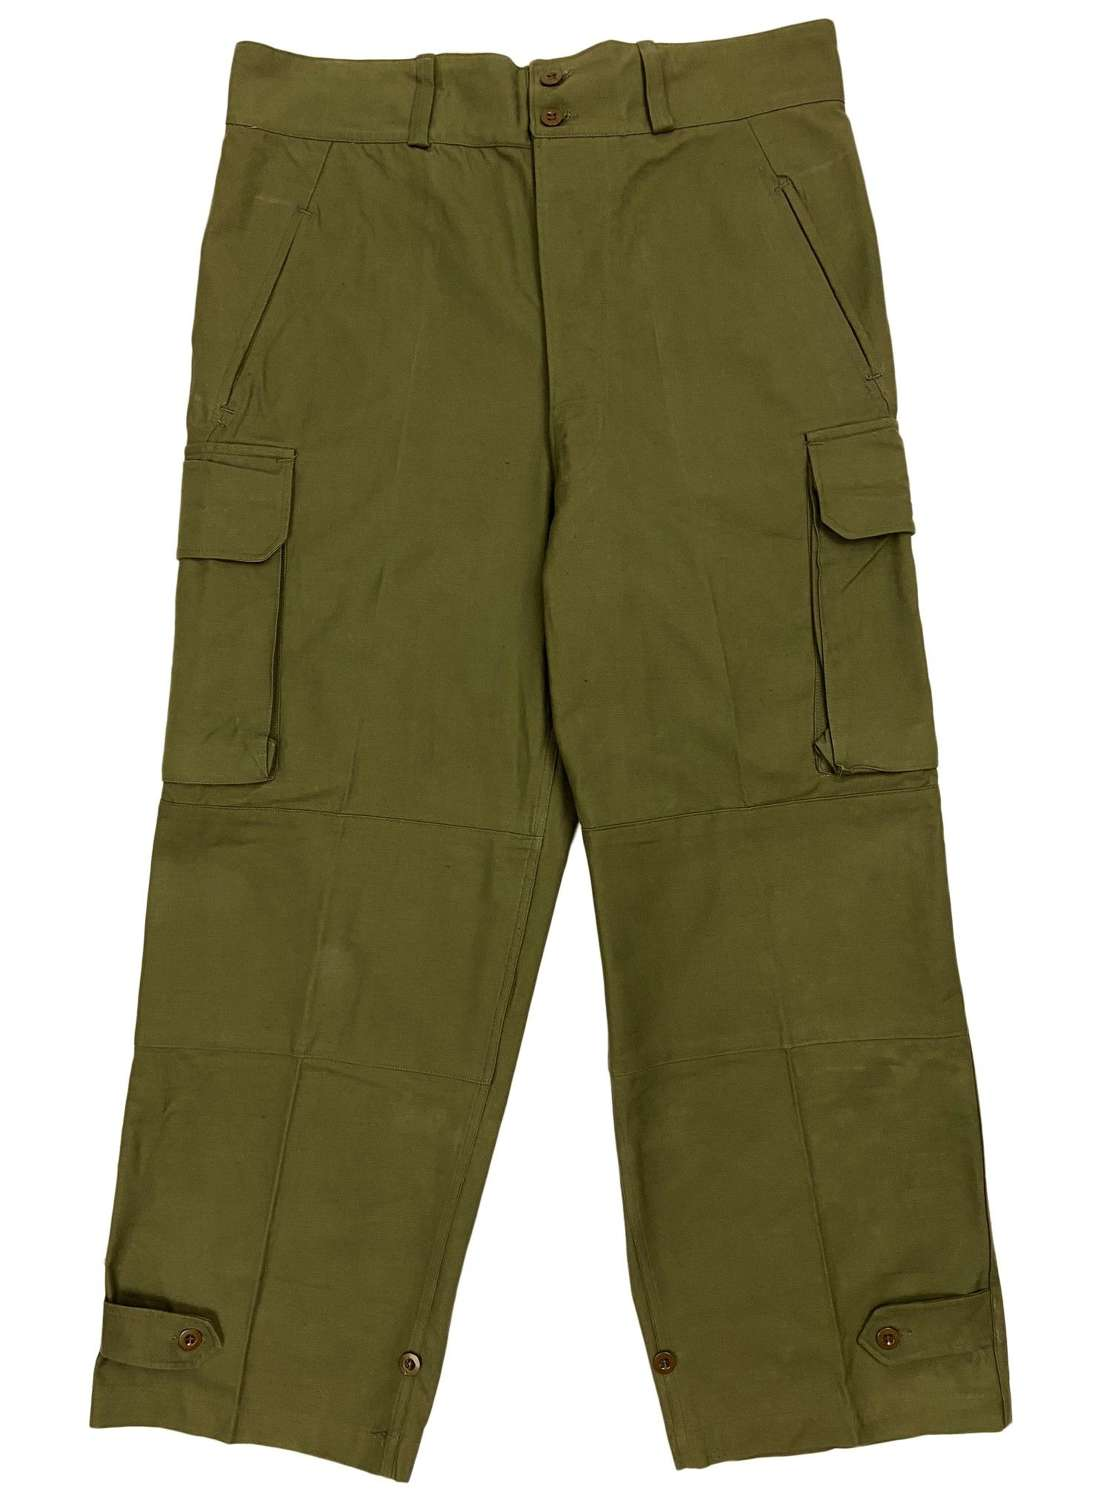 Original 1953 Dated French Army M47 Trousers - Size 36